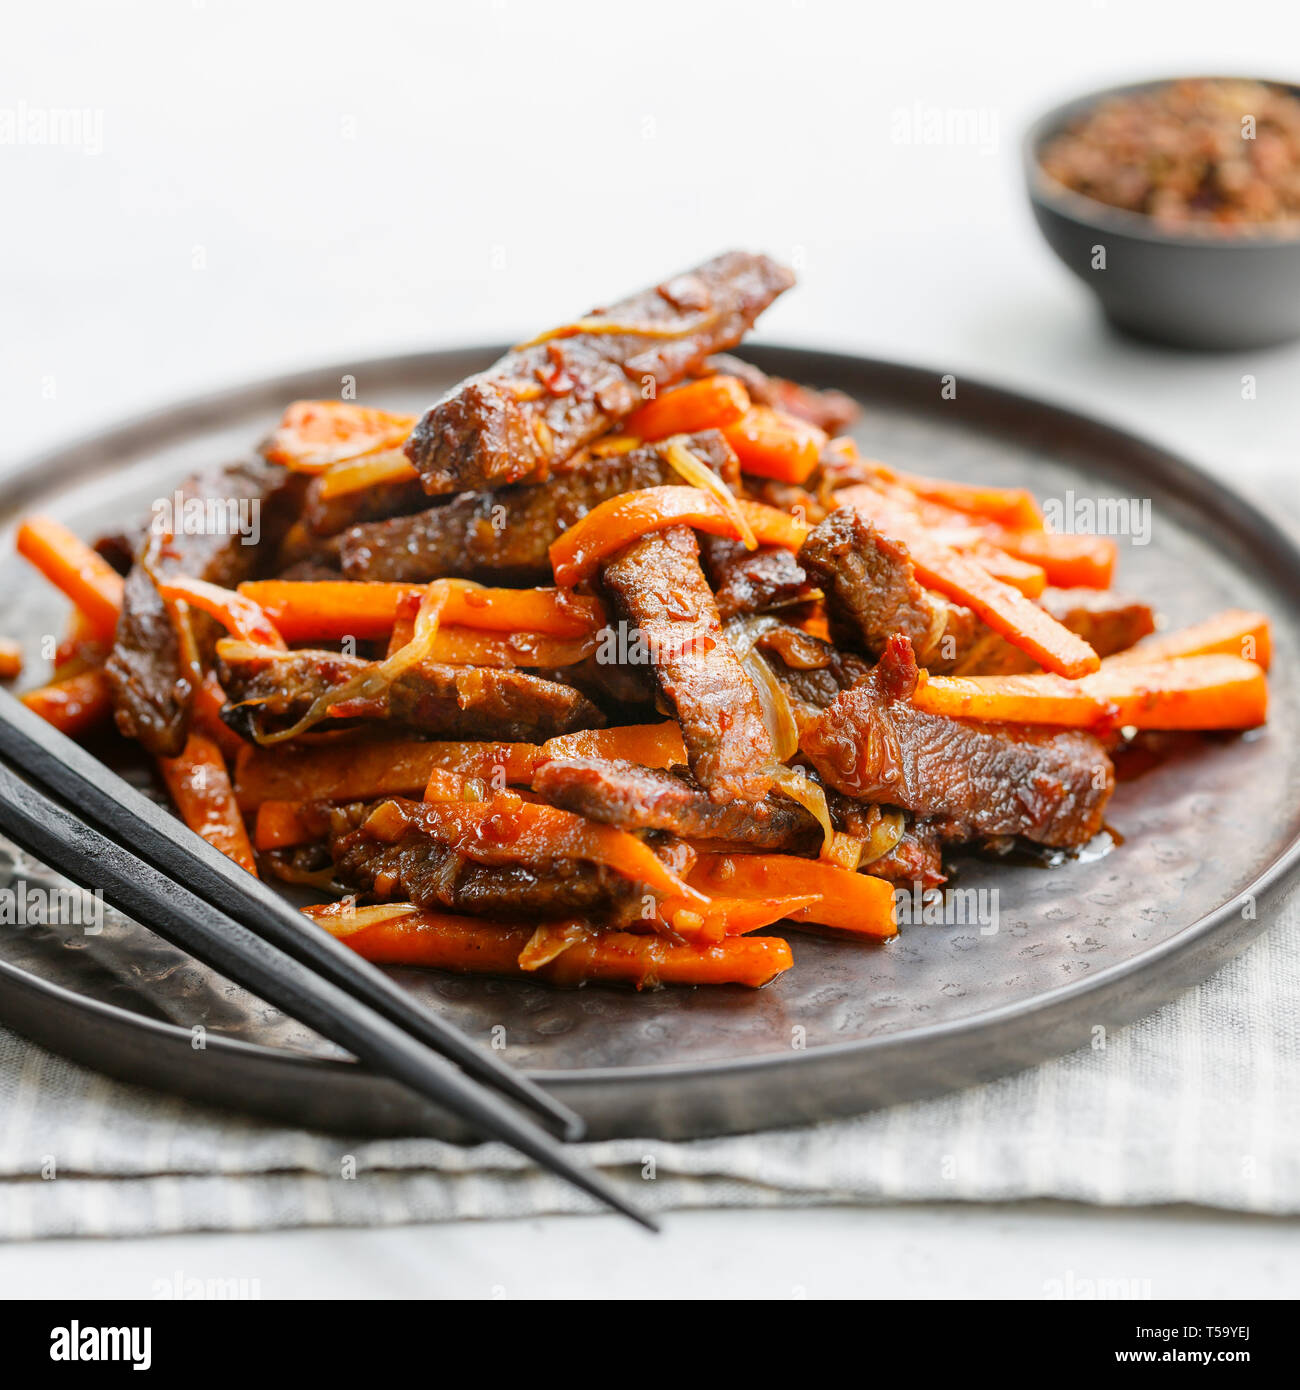 Close-up of Chinese spicy Szechuan beef meal on a black